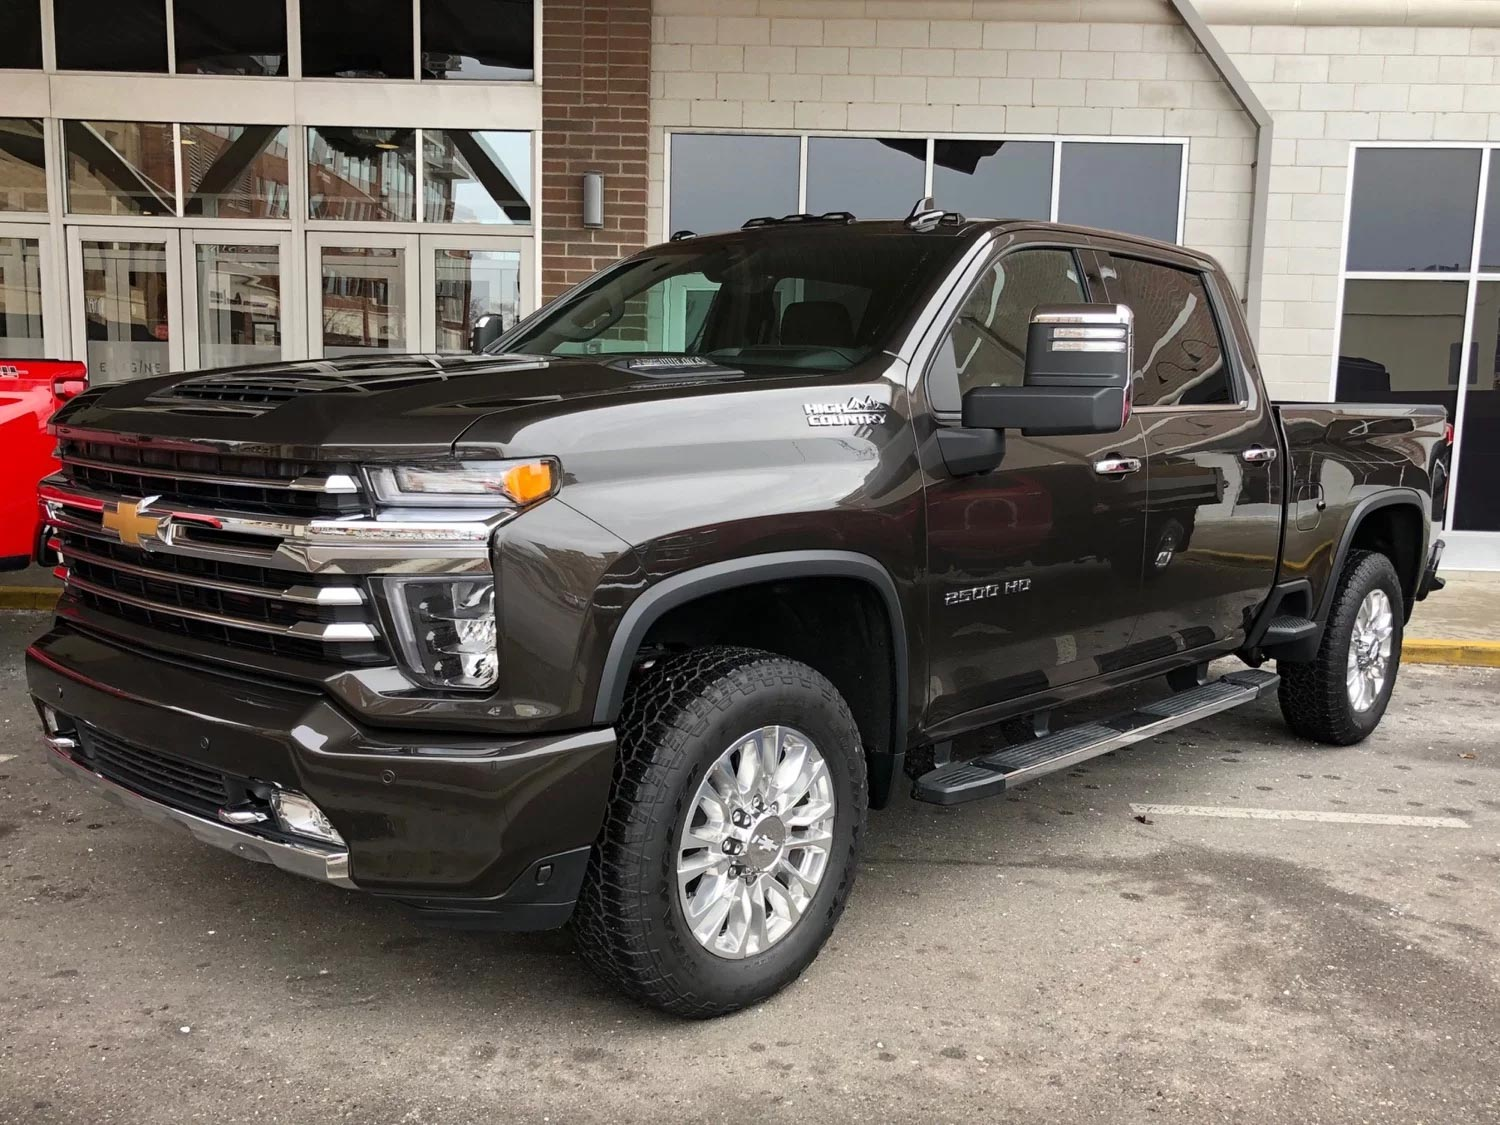 71 The Best 2020 Chevrolet Silverado Interior